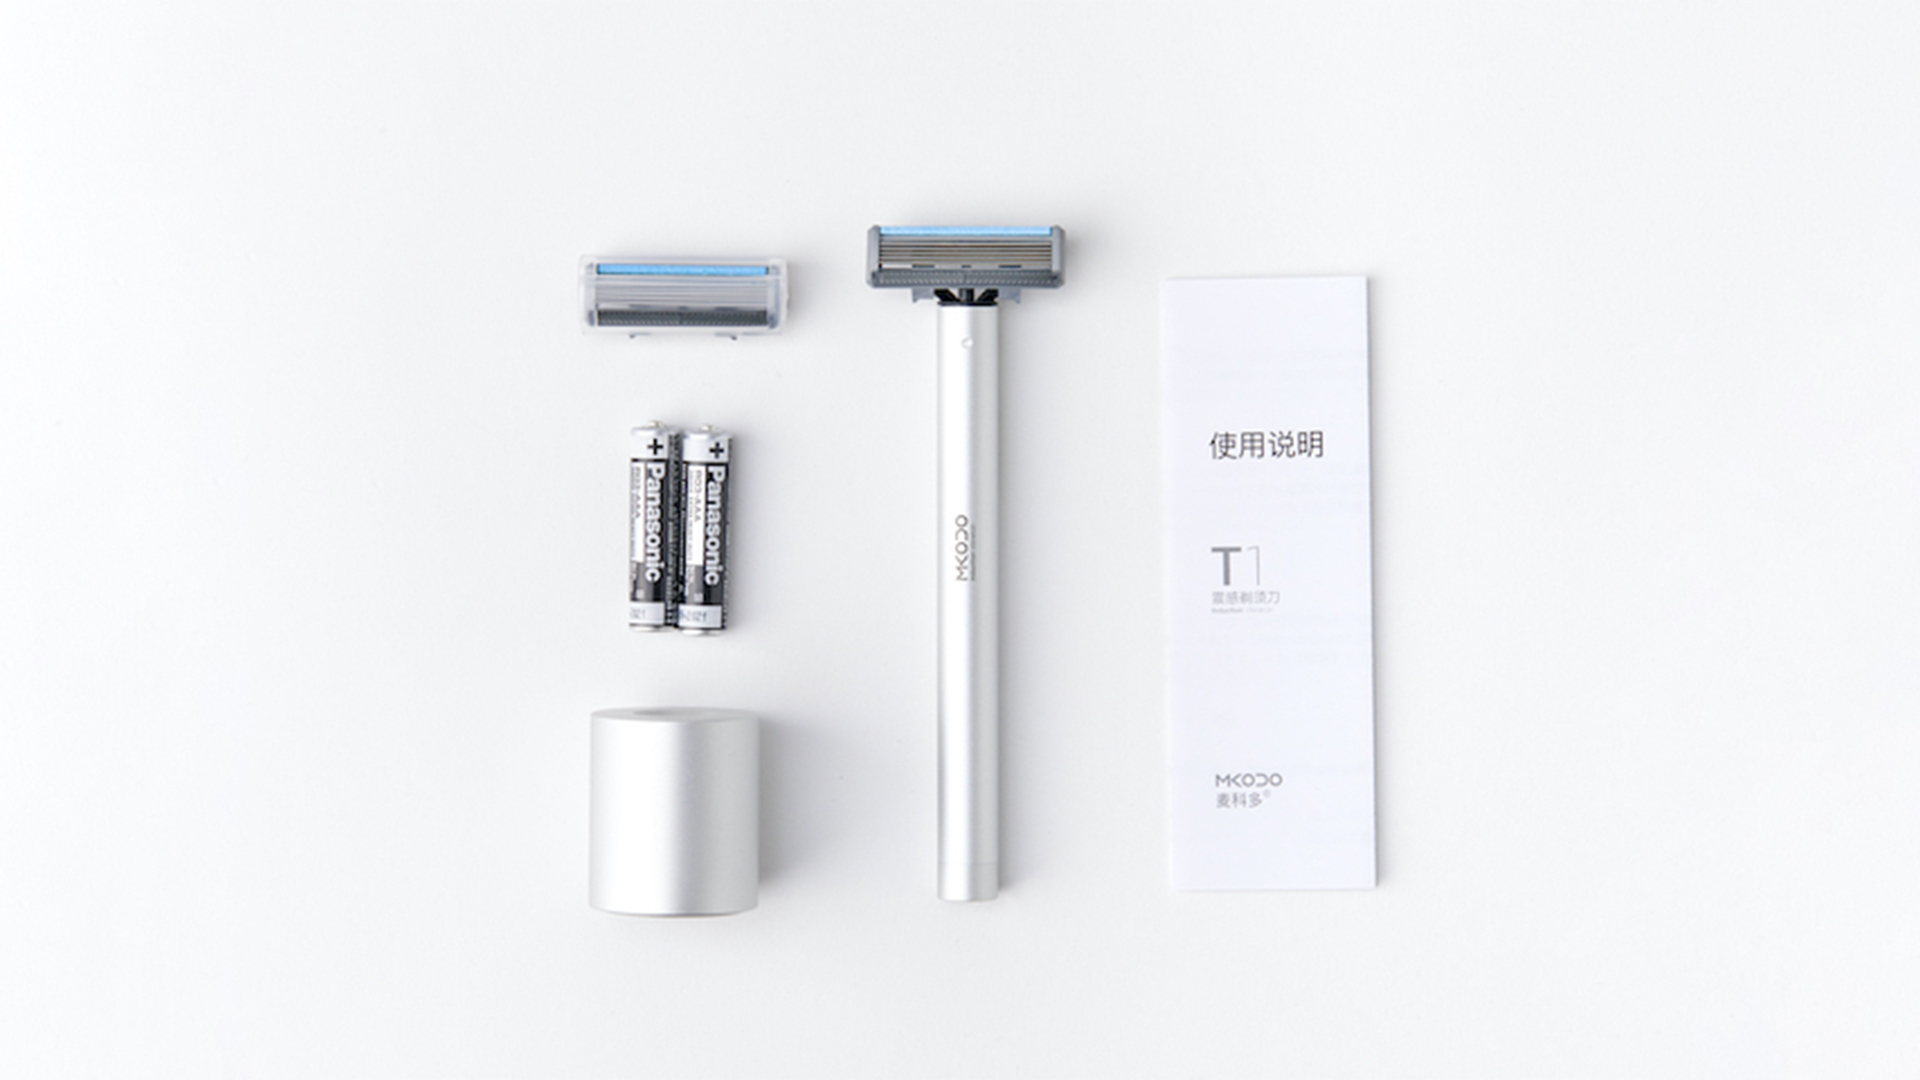 Manual & Electric 2-In-1 Shaver 37 - Sneapy